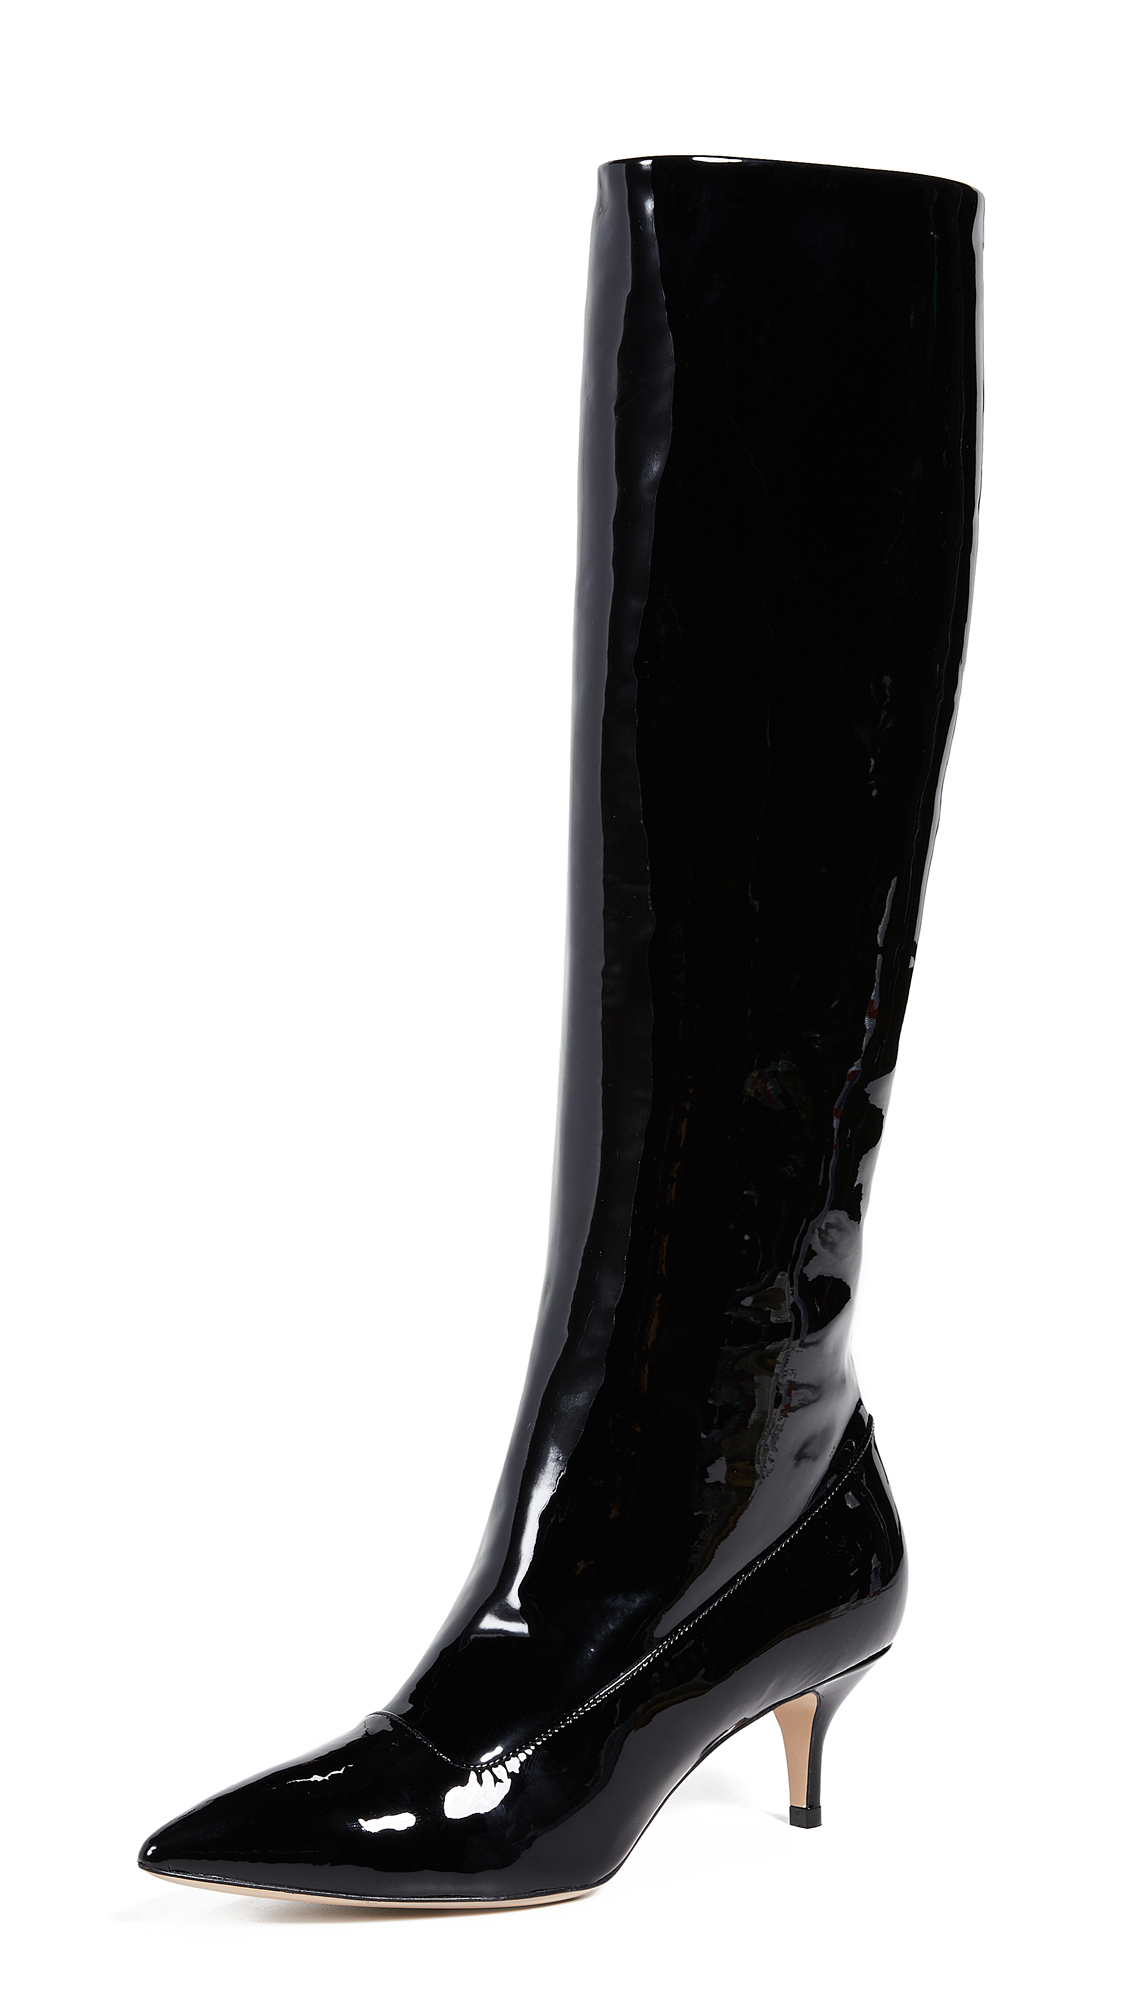 Paul Andrew Nadia Patent Leather Boots - Black